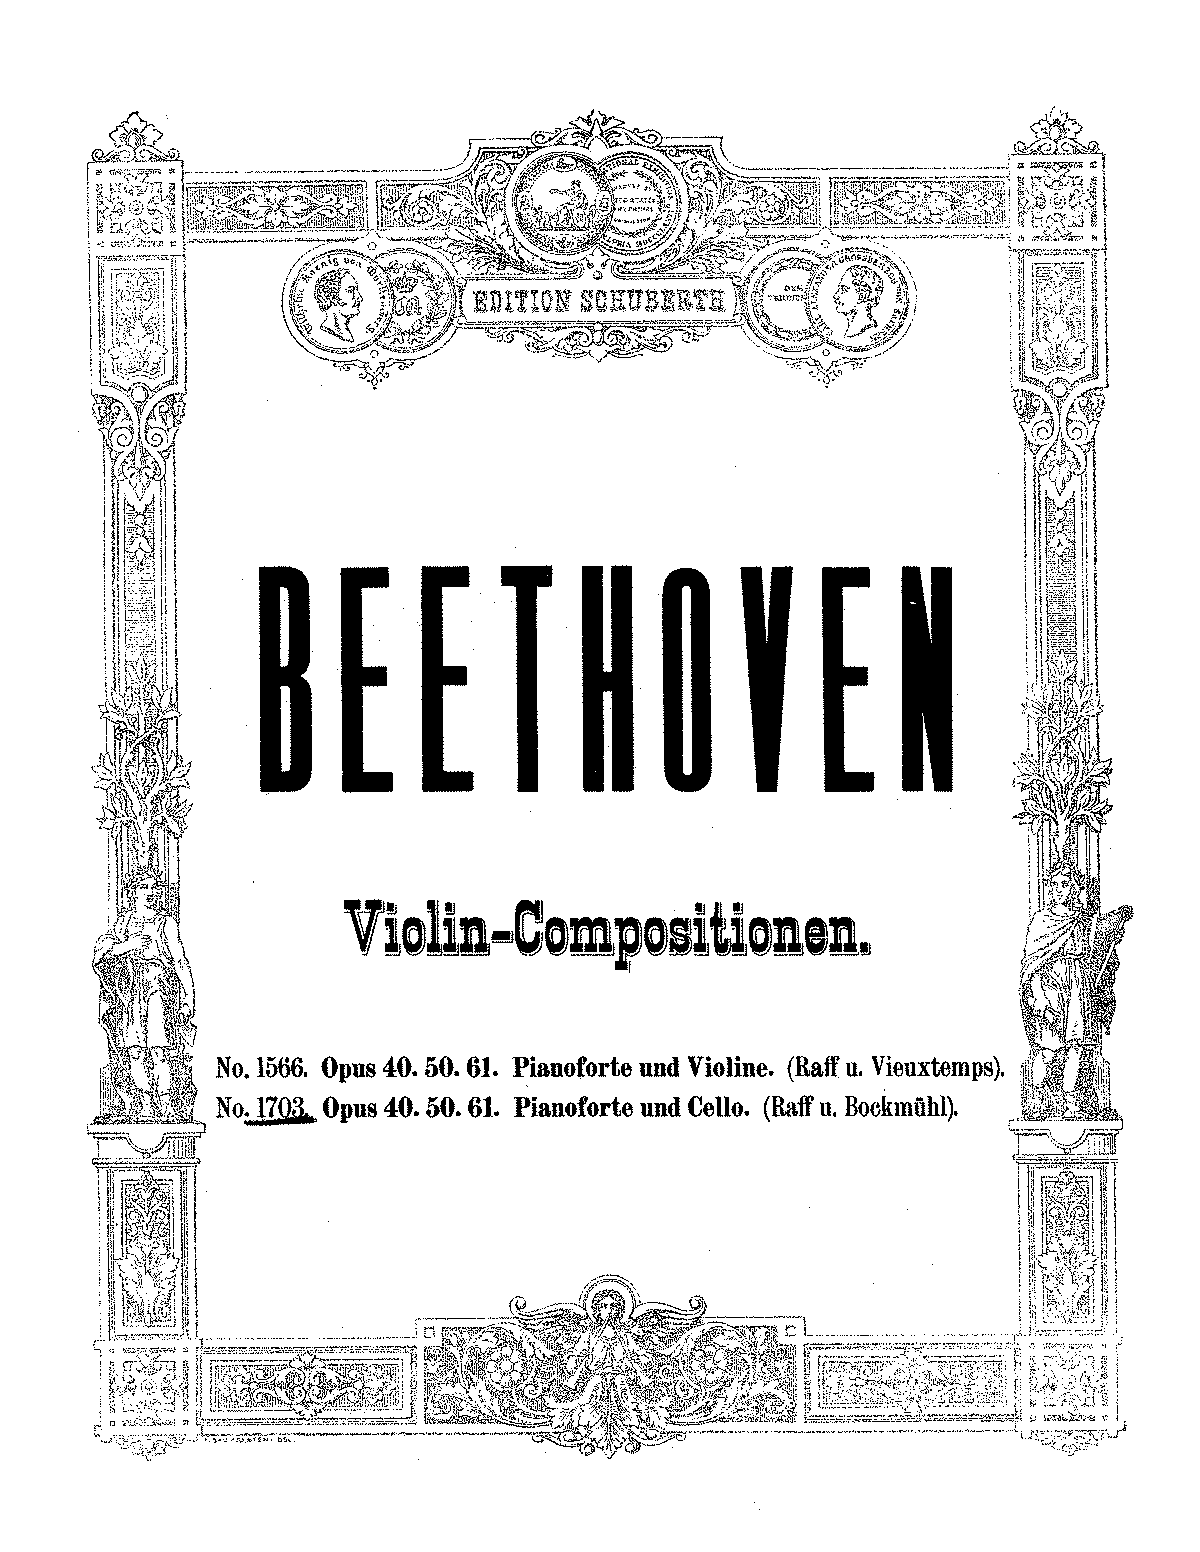 PMLP01796-Beethoven - Concerto for Cello Op61 (Volkmann-Bockmuhl) for cello and piano pno.pdf